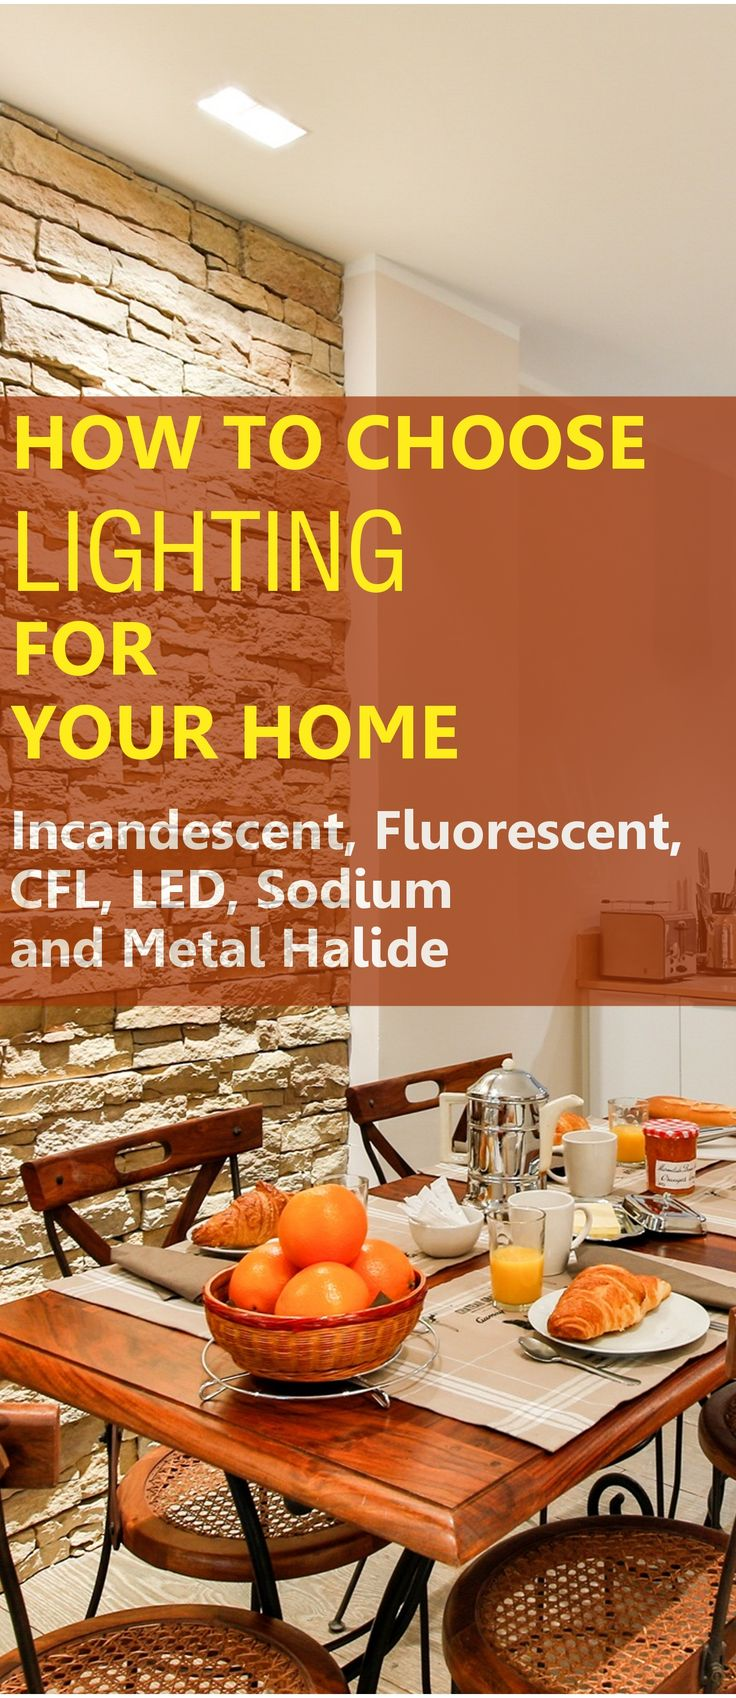 """Did you know that a """"normal"""" incandescent light bulb only converts about 5% of the electricity used into useful light? There are lots of other lighting options which are much more energy efficient #lighting #lamps #HomeImprovement #illumination #EnergyEfficiency"""